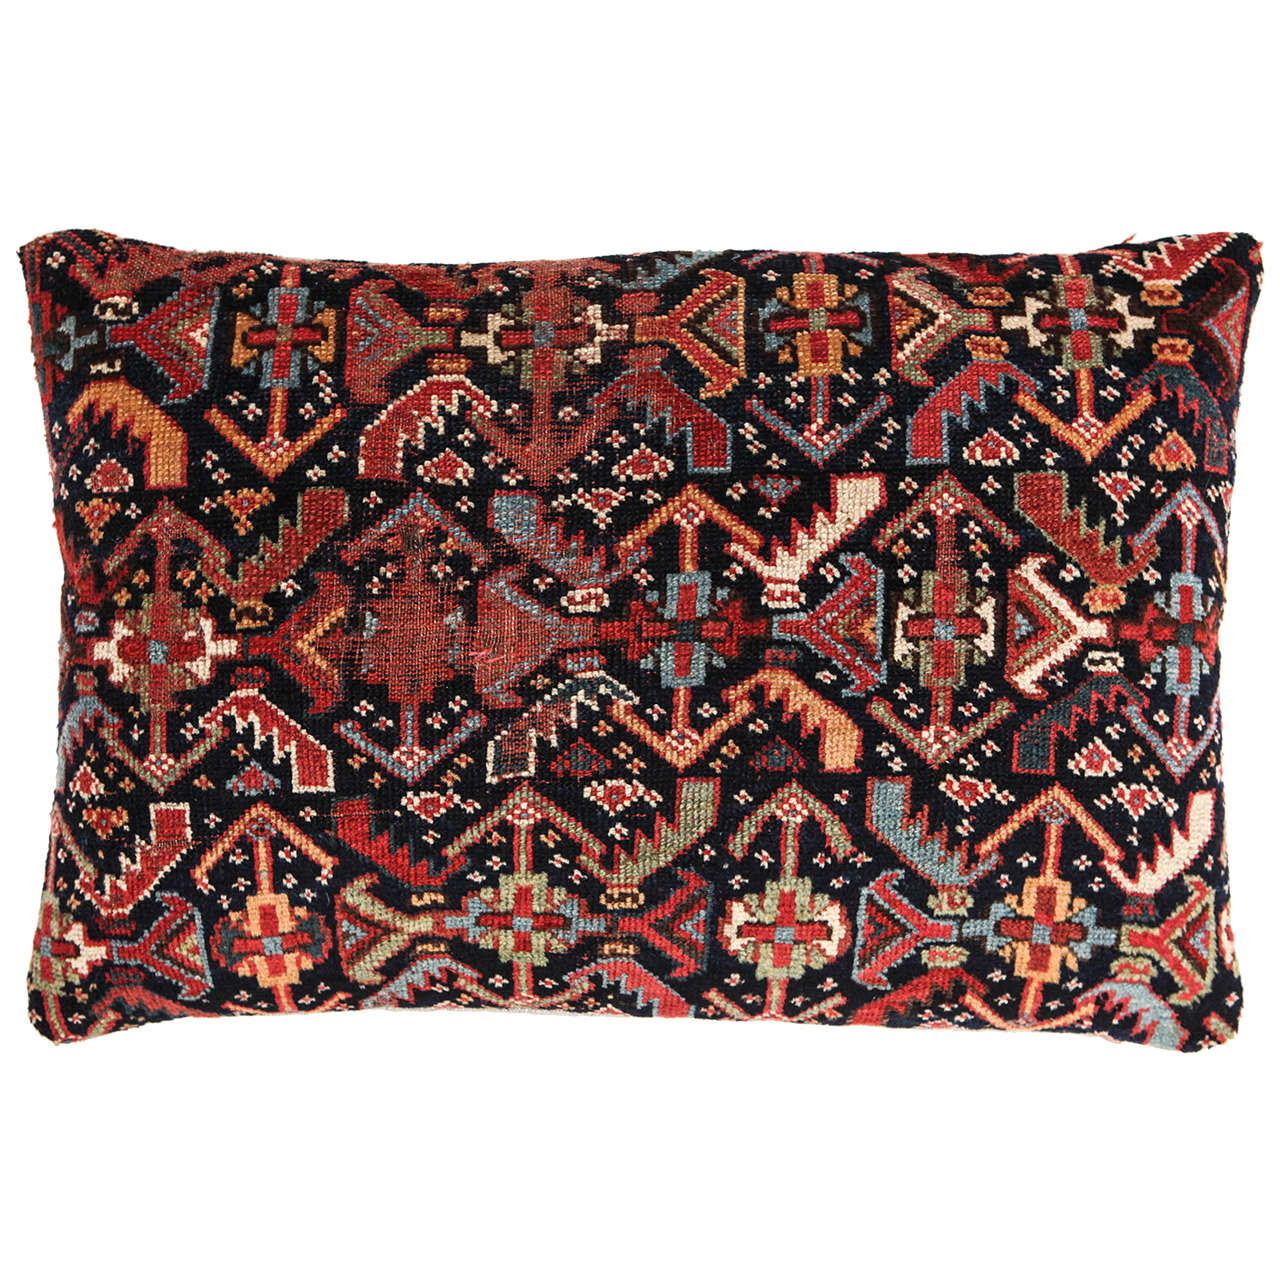 Antique Persian Carpet Pillow at 1stdibs